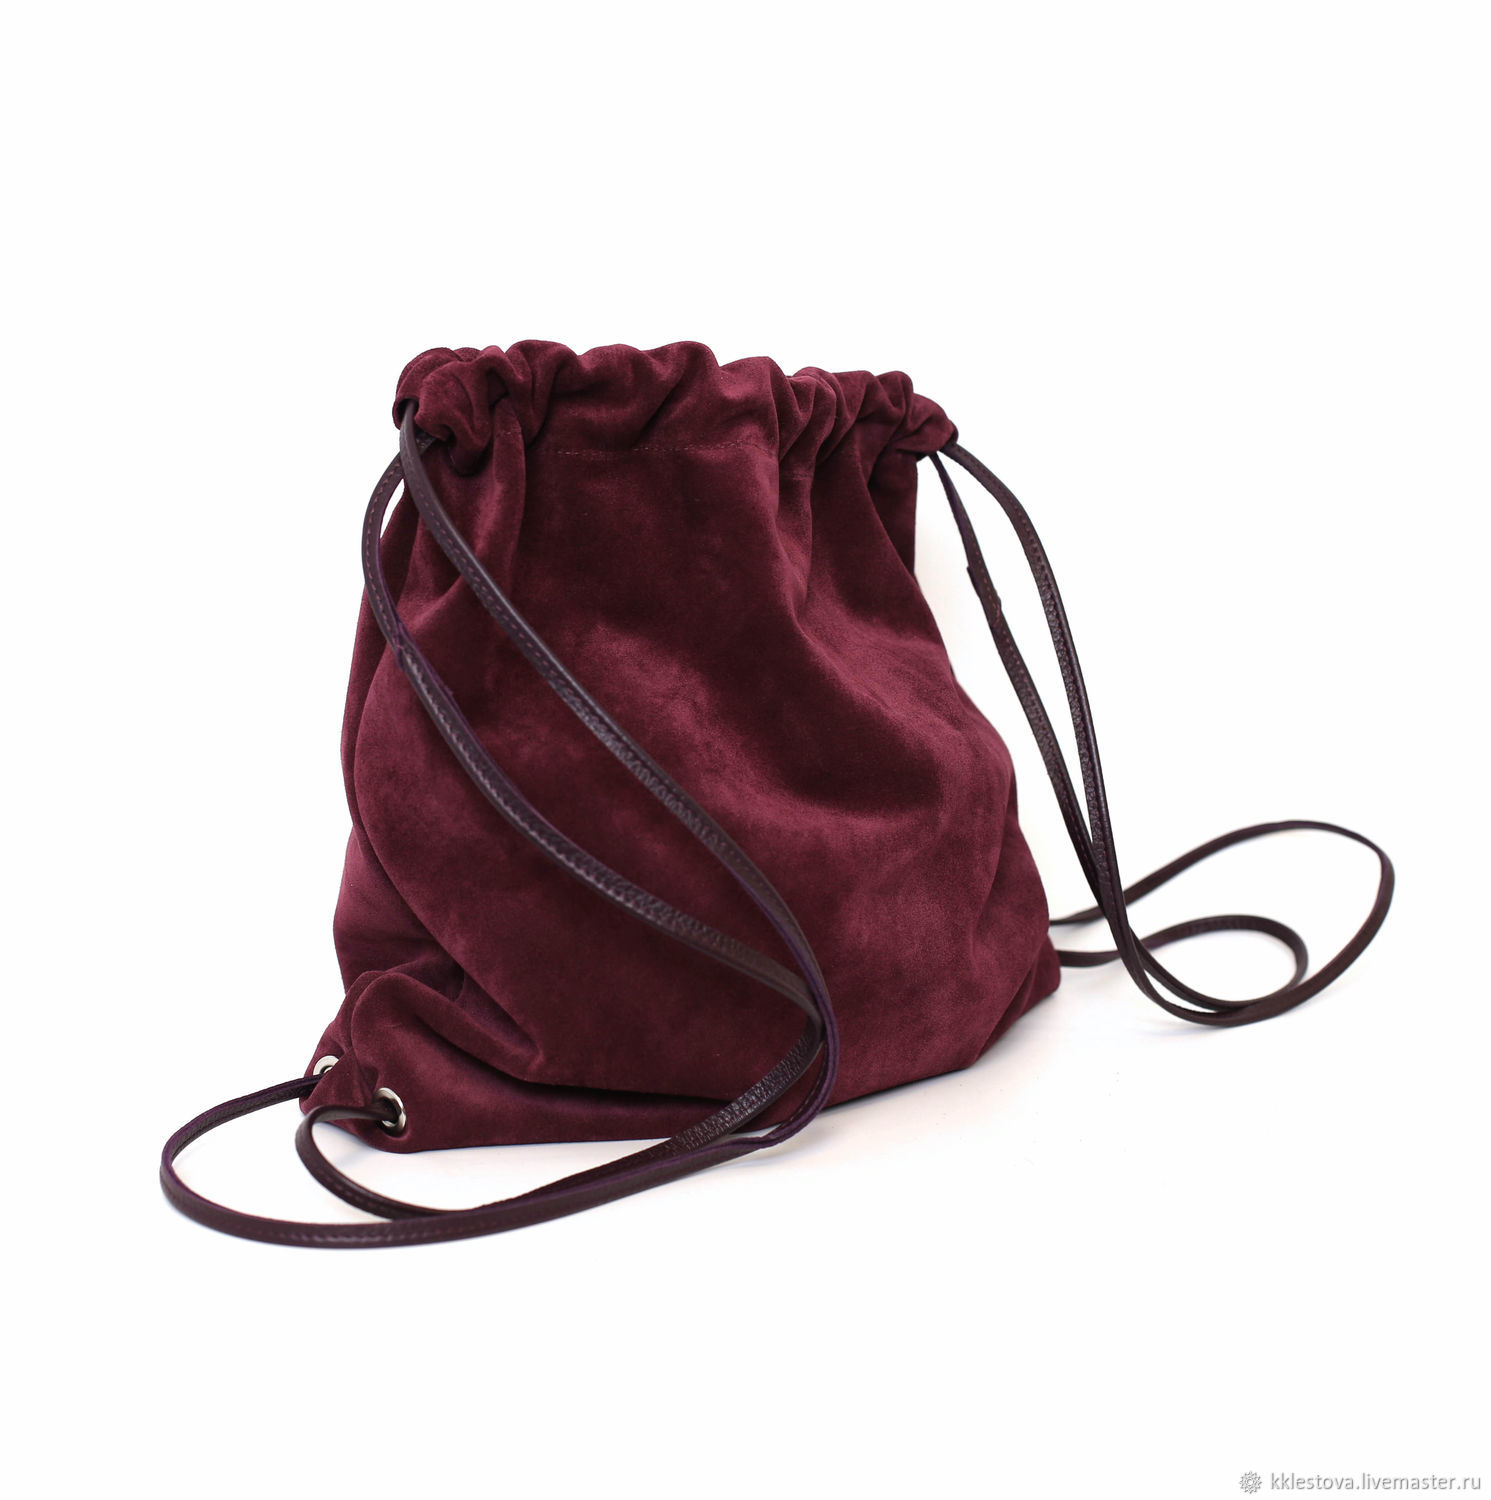 Burgundy suede Backpack bag medium with pocket Unisex Urban, Backpacks, Moscow,  Фото №1